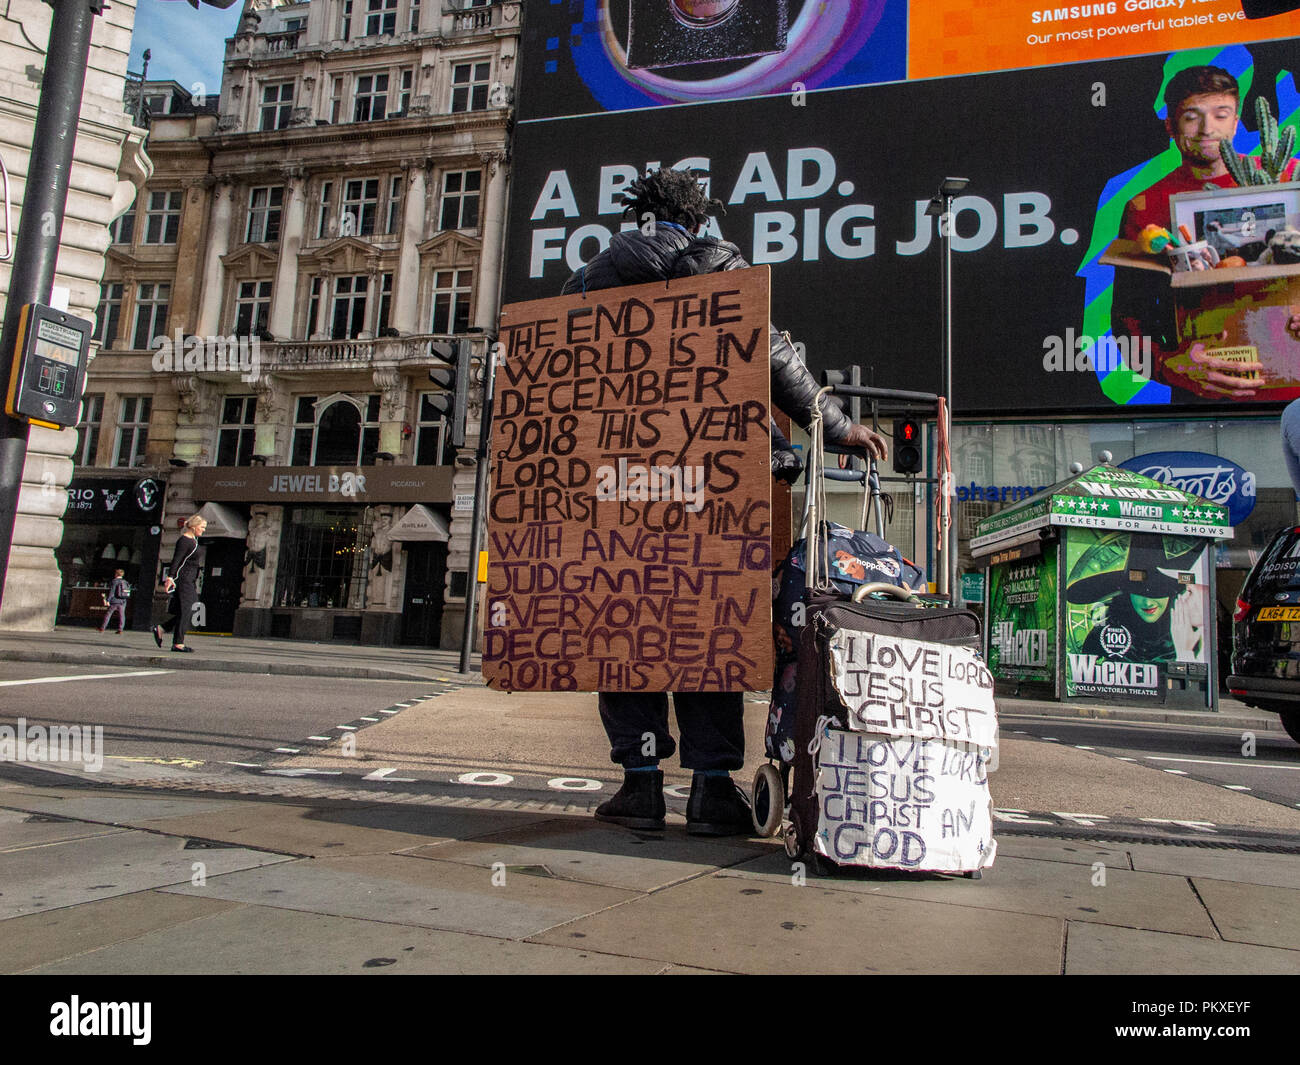 A man wearing a sandwich board predicting the end of the world walks through Piccadilly Circus in central London Stock Photo